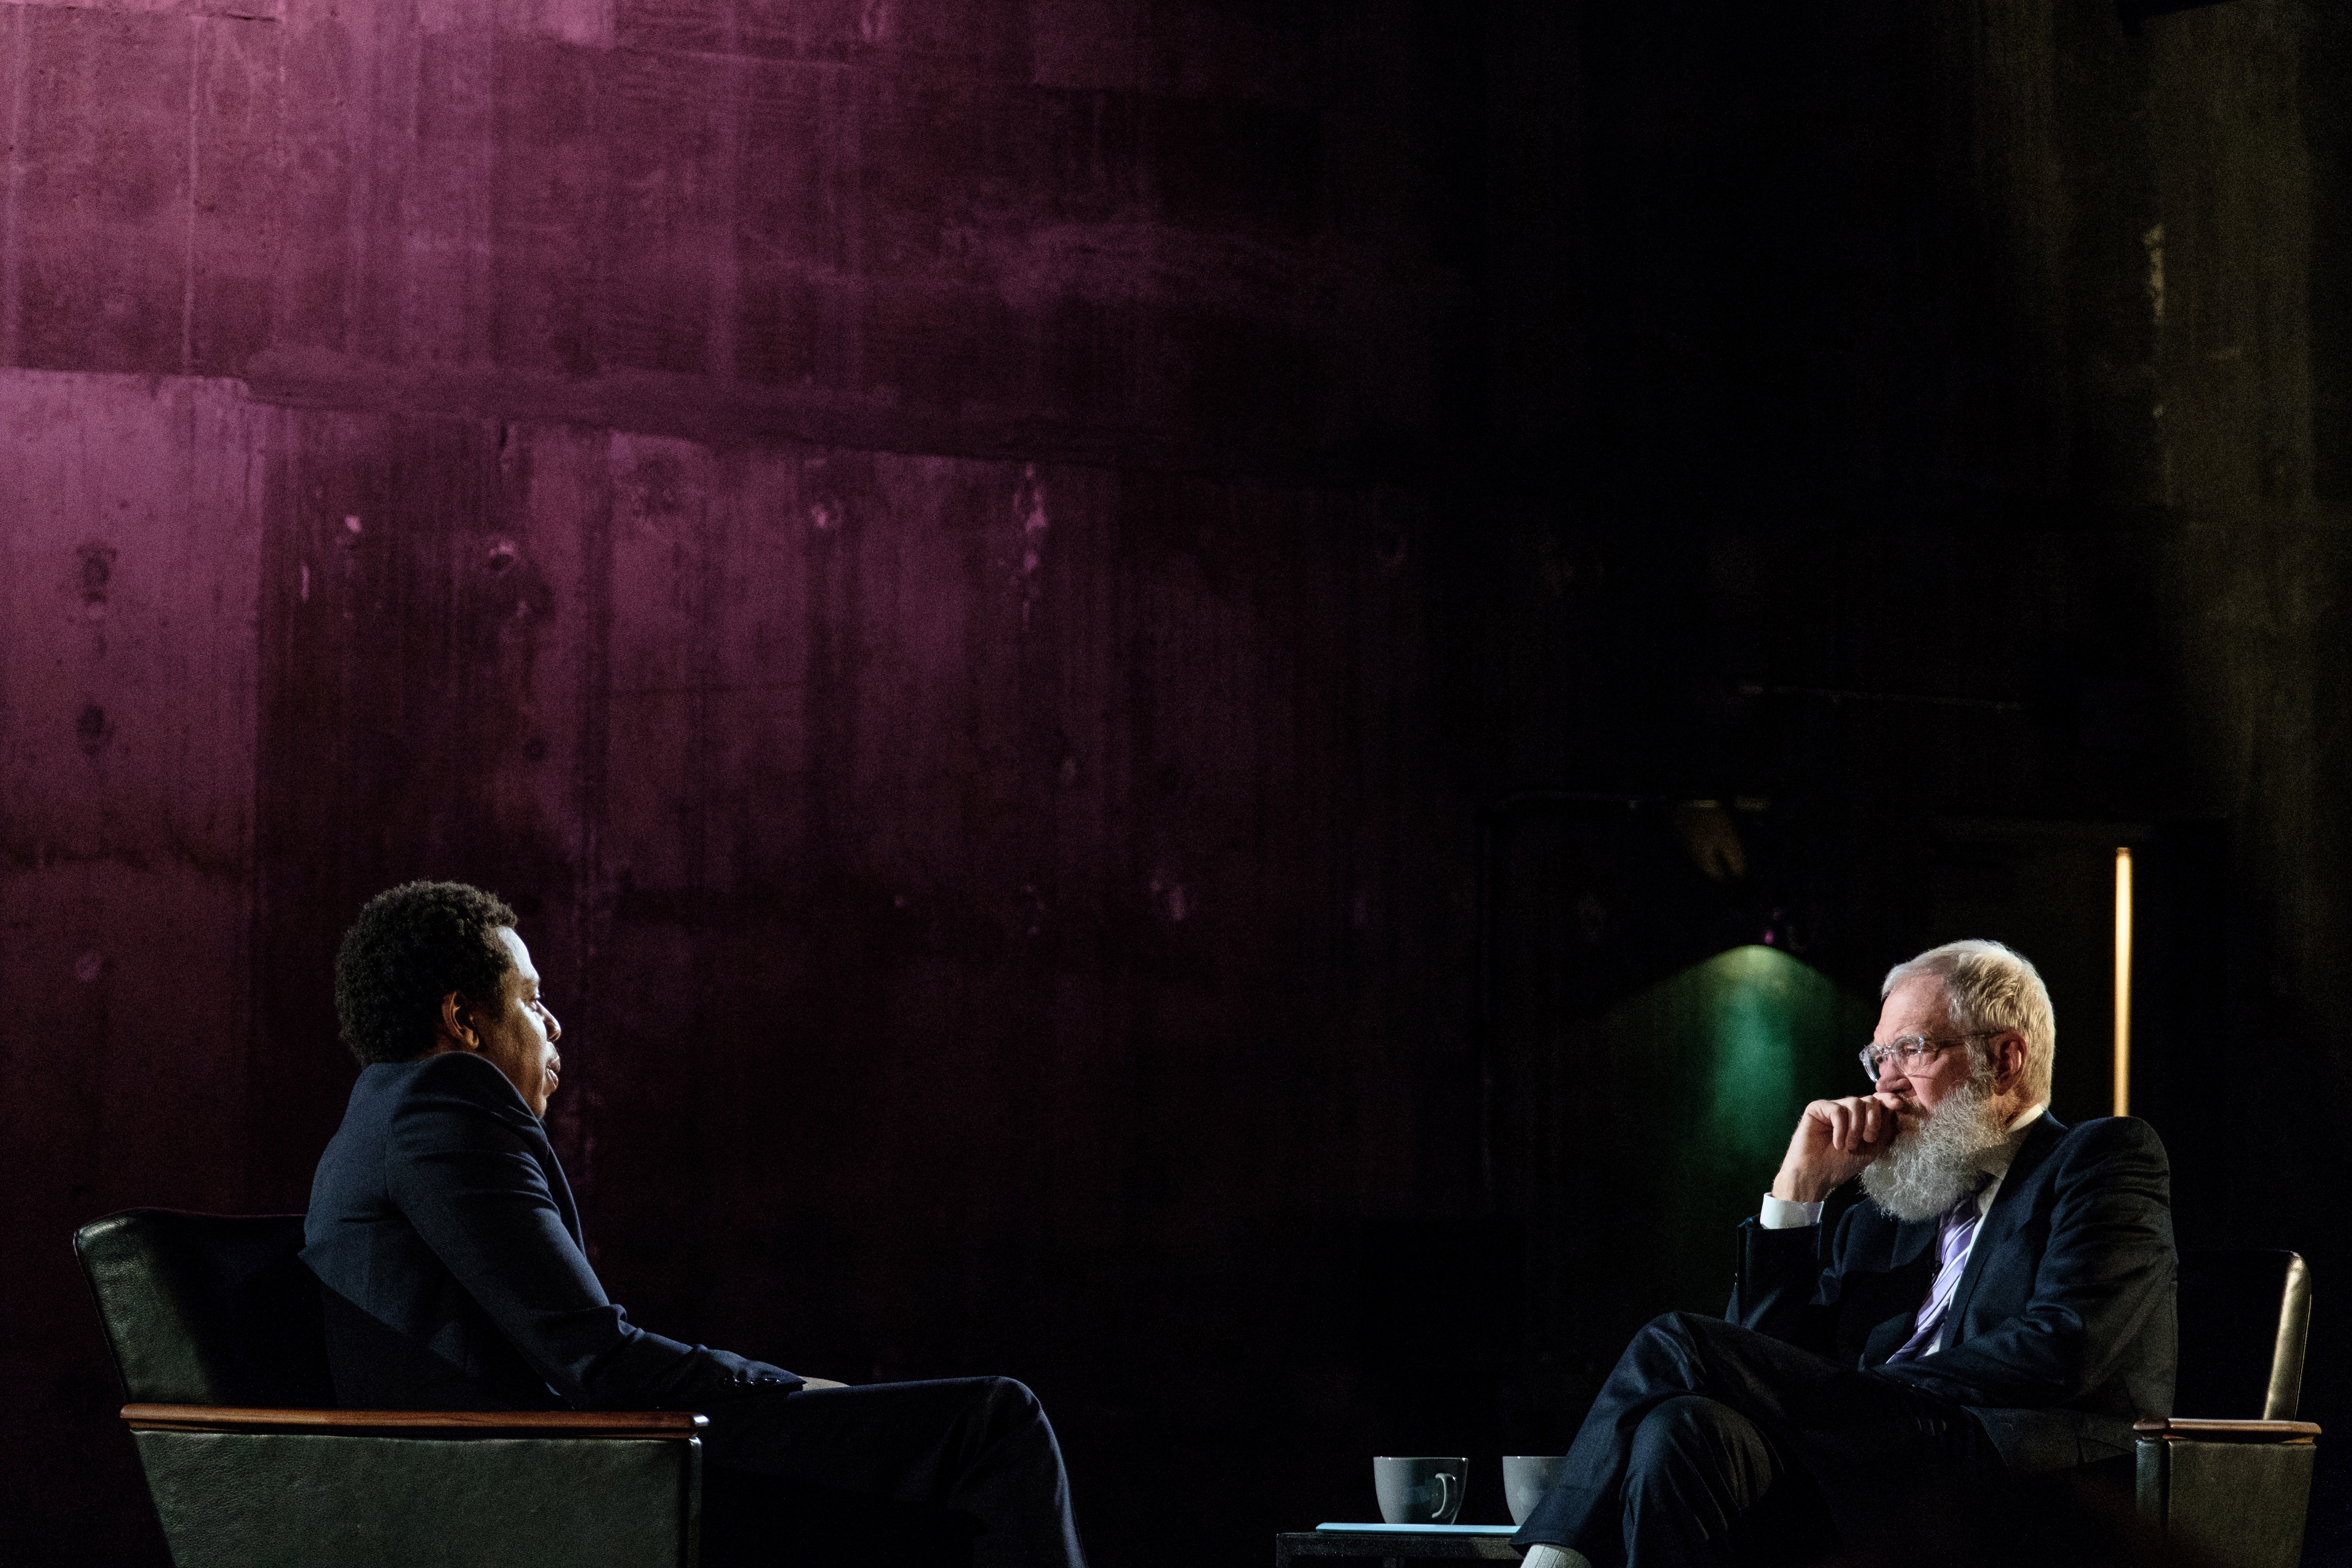 10 Things We Learned From Jay-Z's Interview With David